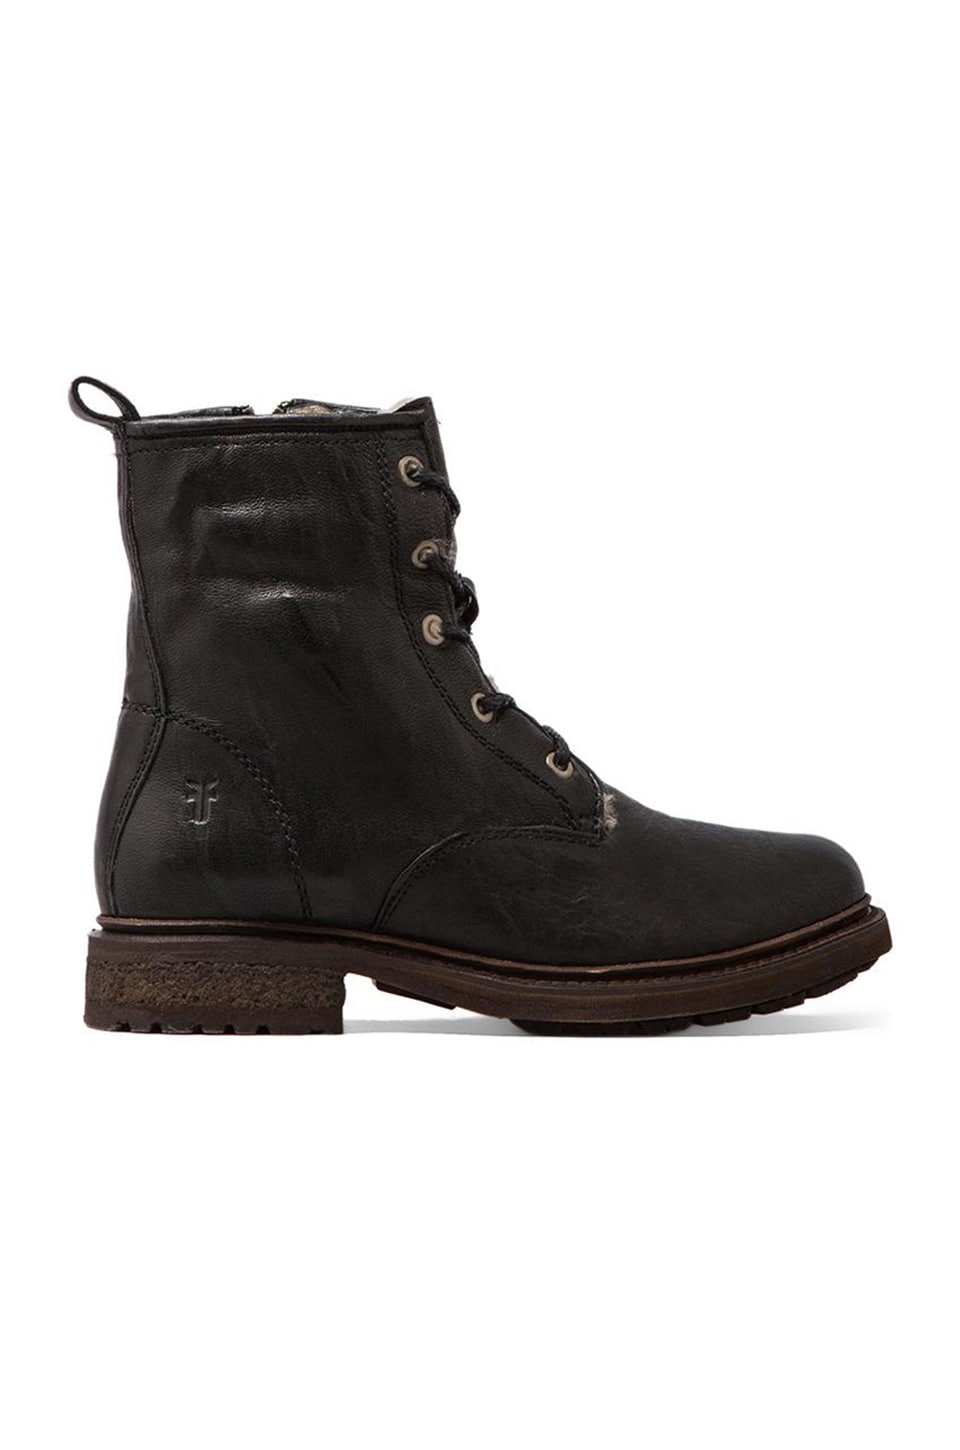 Frye Valerie Lace Up Lamb Shearling Lined Boot in Black